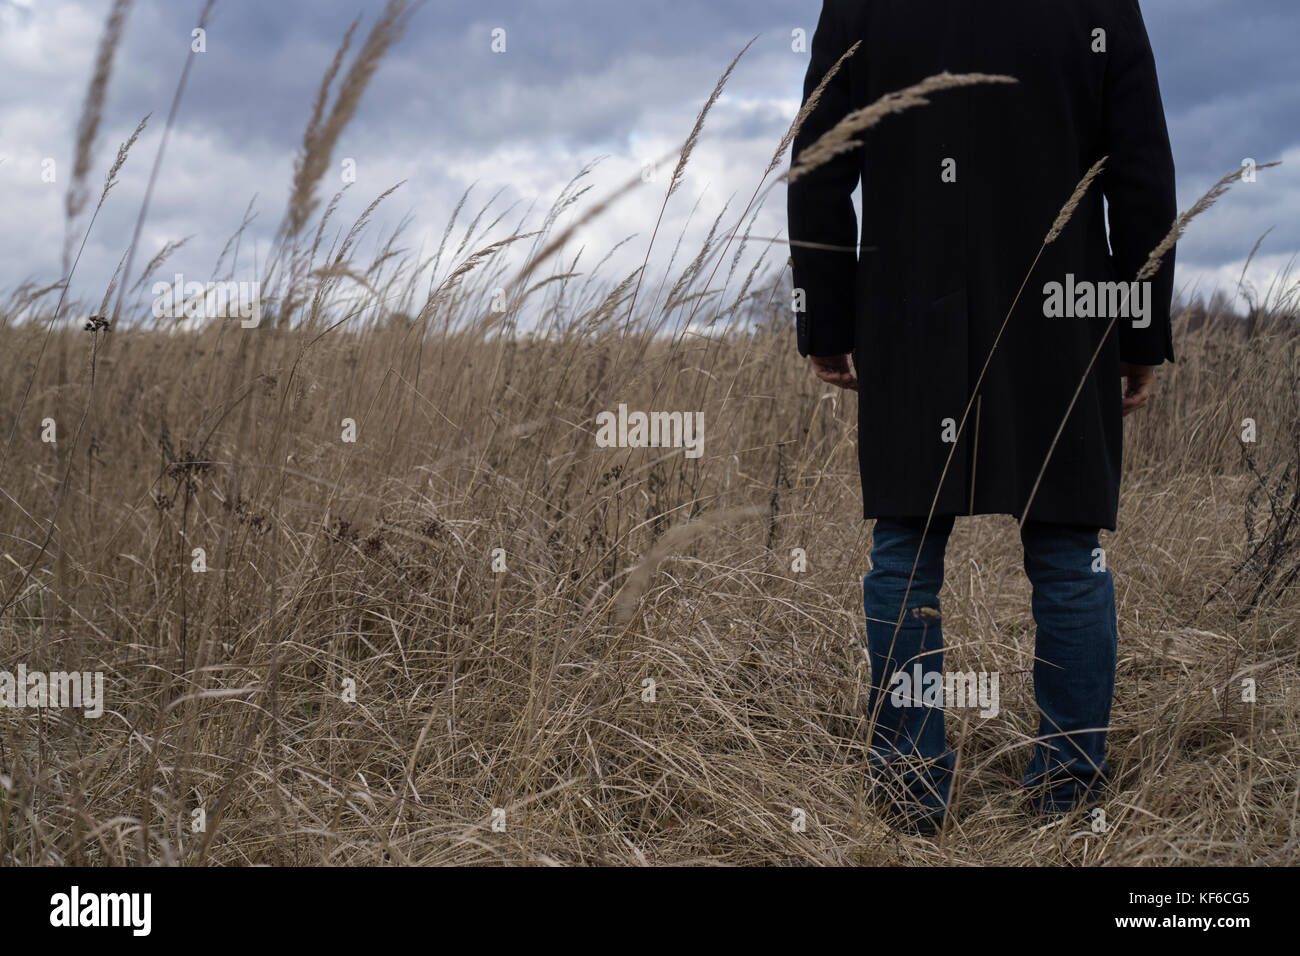 Back close up of a man wearing a coat standing in a field - Stock Image